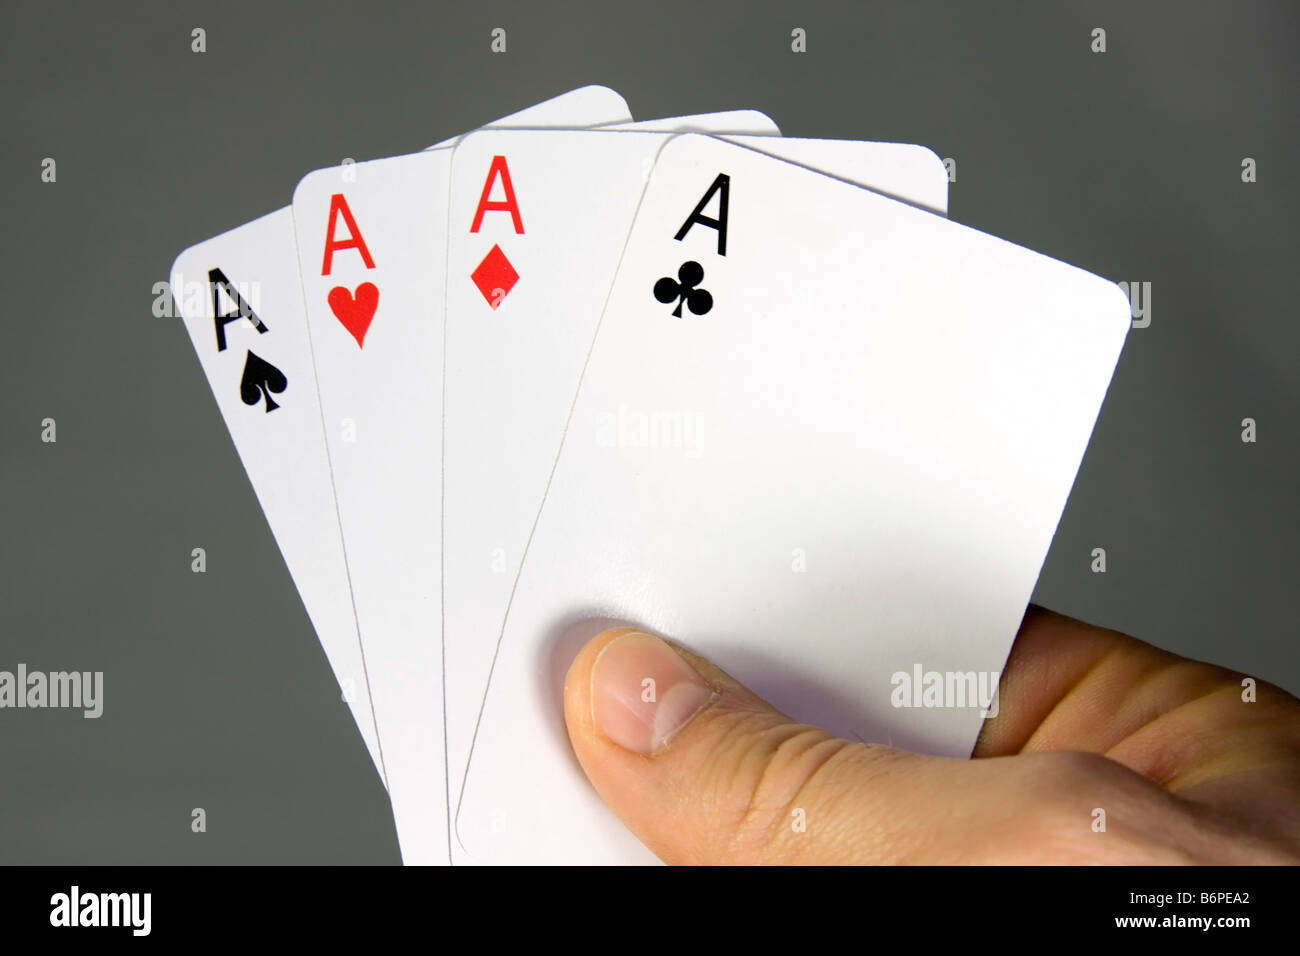 Hand with poker cards. Four of a kind. - Stock Image